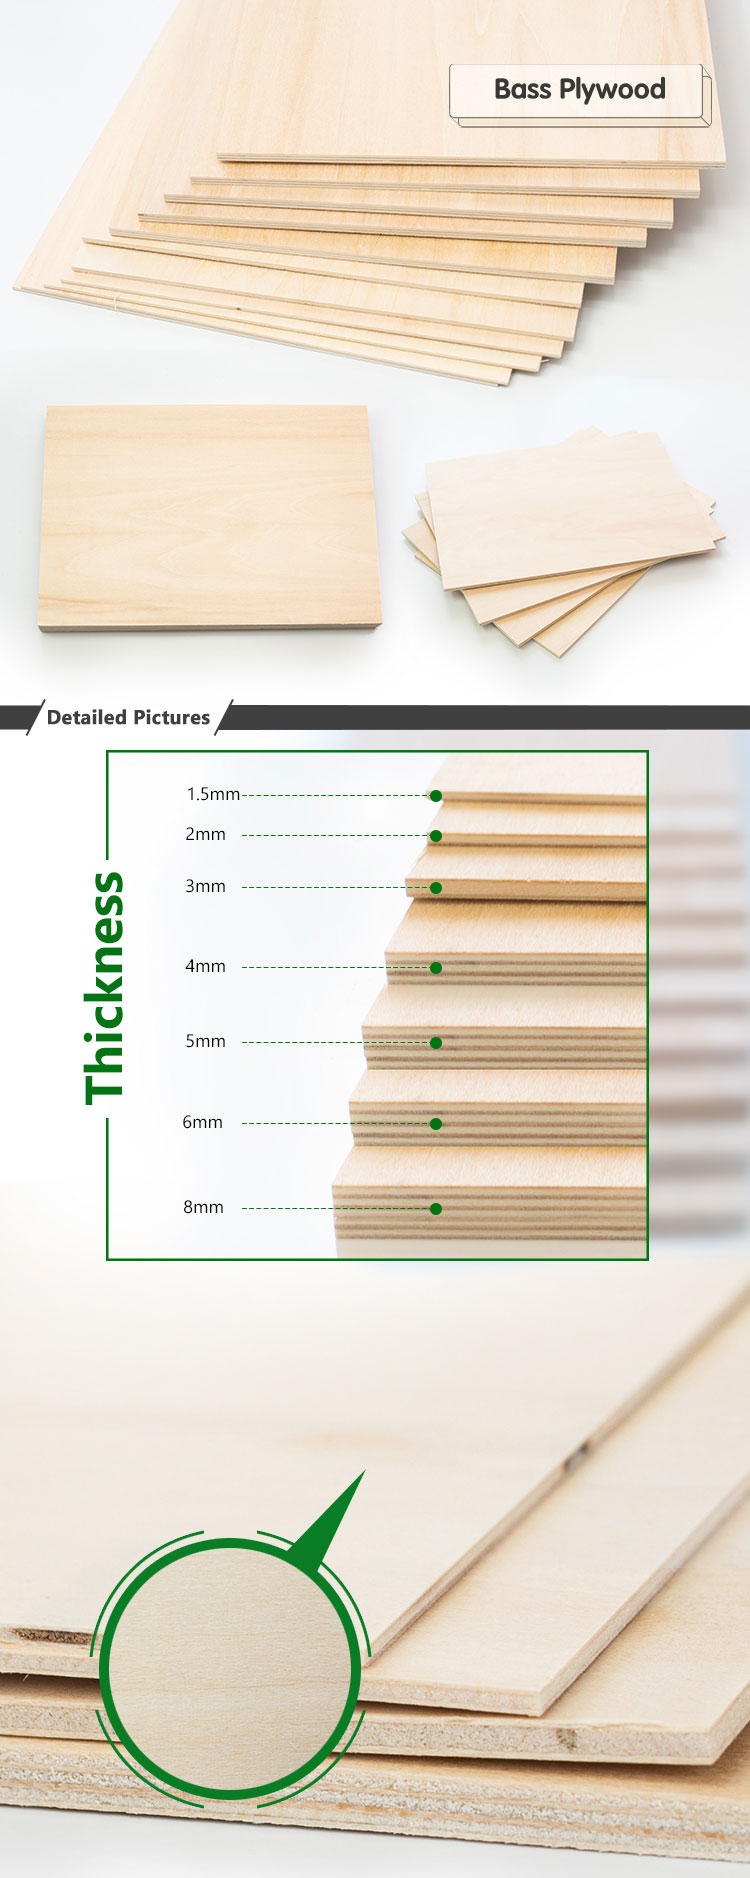 Wholesale Aircraft Grade 1MM 5MM Wada Basswood Bass Plywood Sheet 4MM Jas For Laser Cutting 3MM 2MM Basswood Plywoods